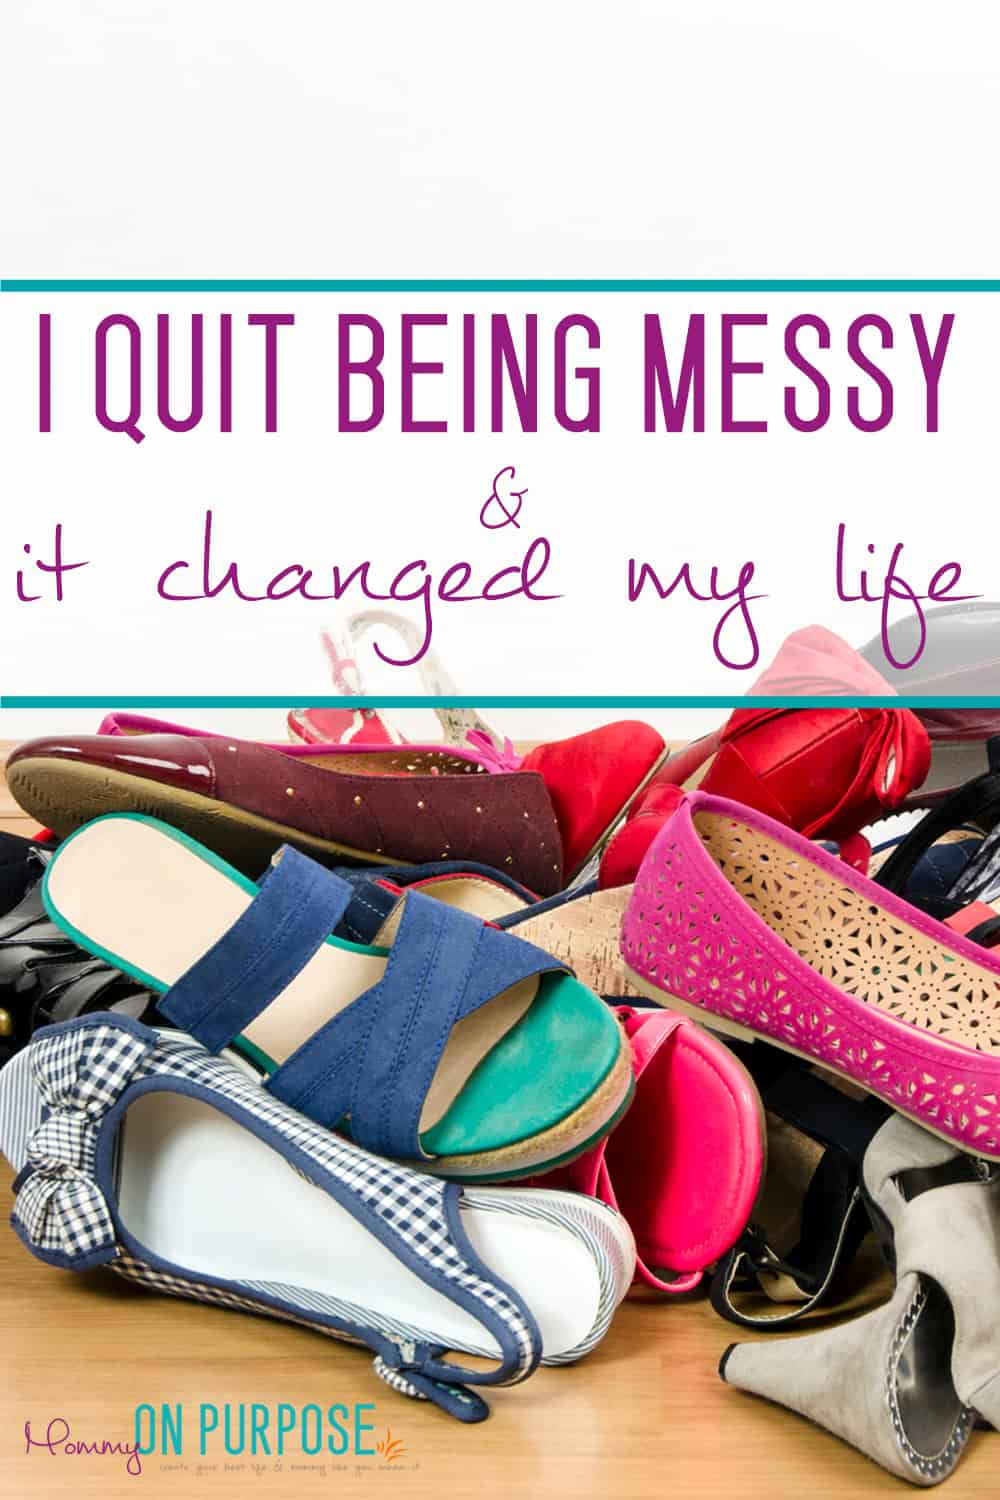 I quit being messy - cleaning and organizing tips!